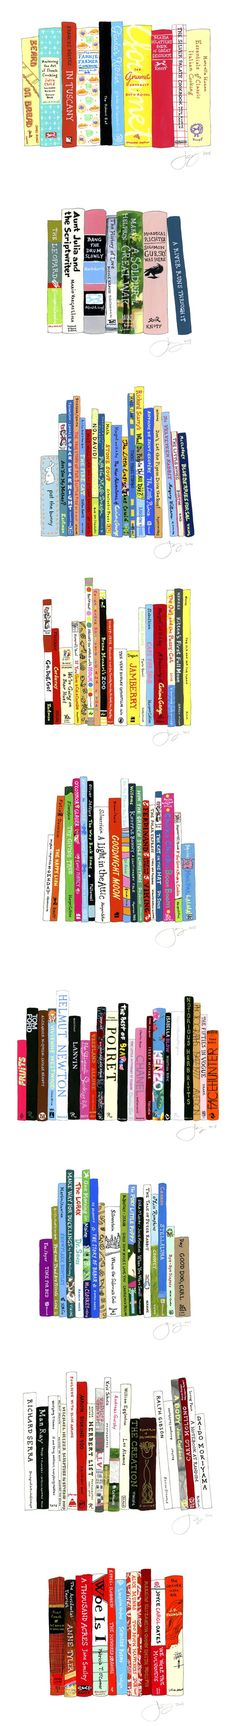 jane mount ~ 'ideal bookshelf' a gouache & ink series of drawings